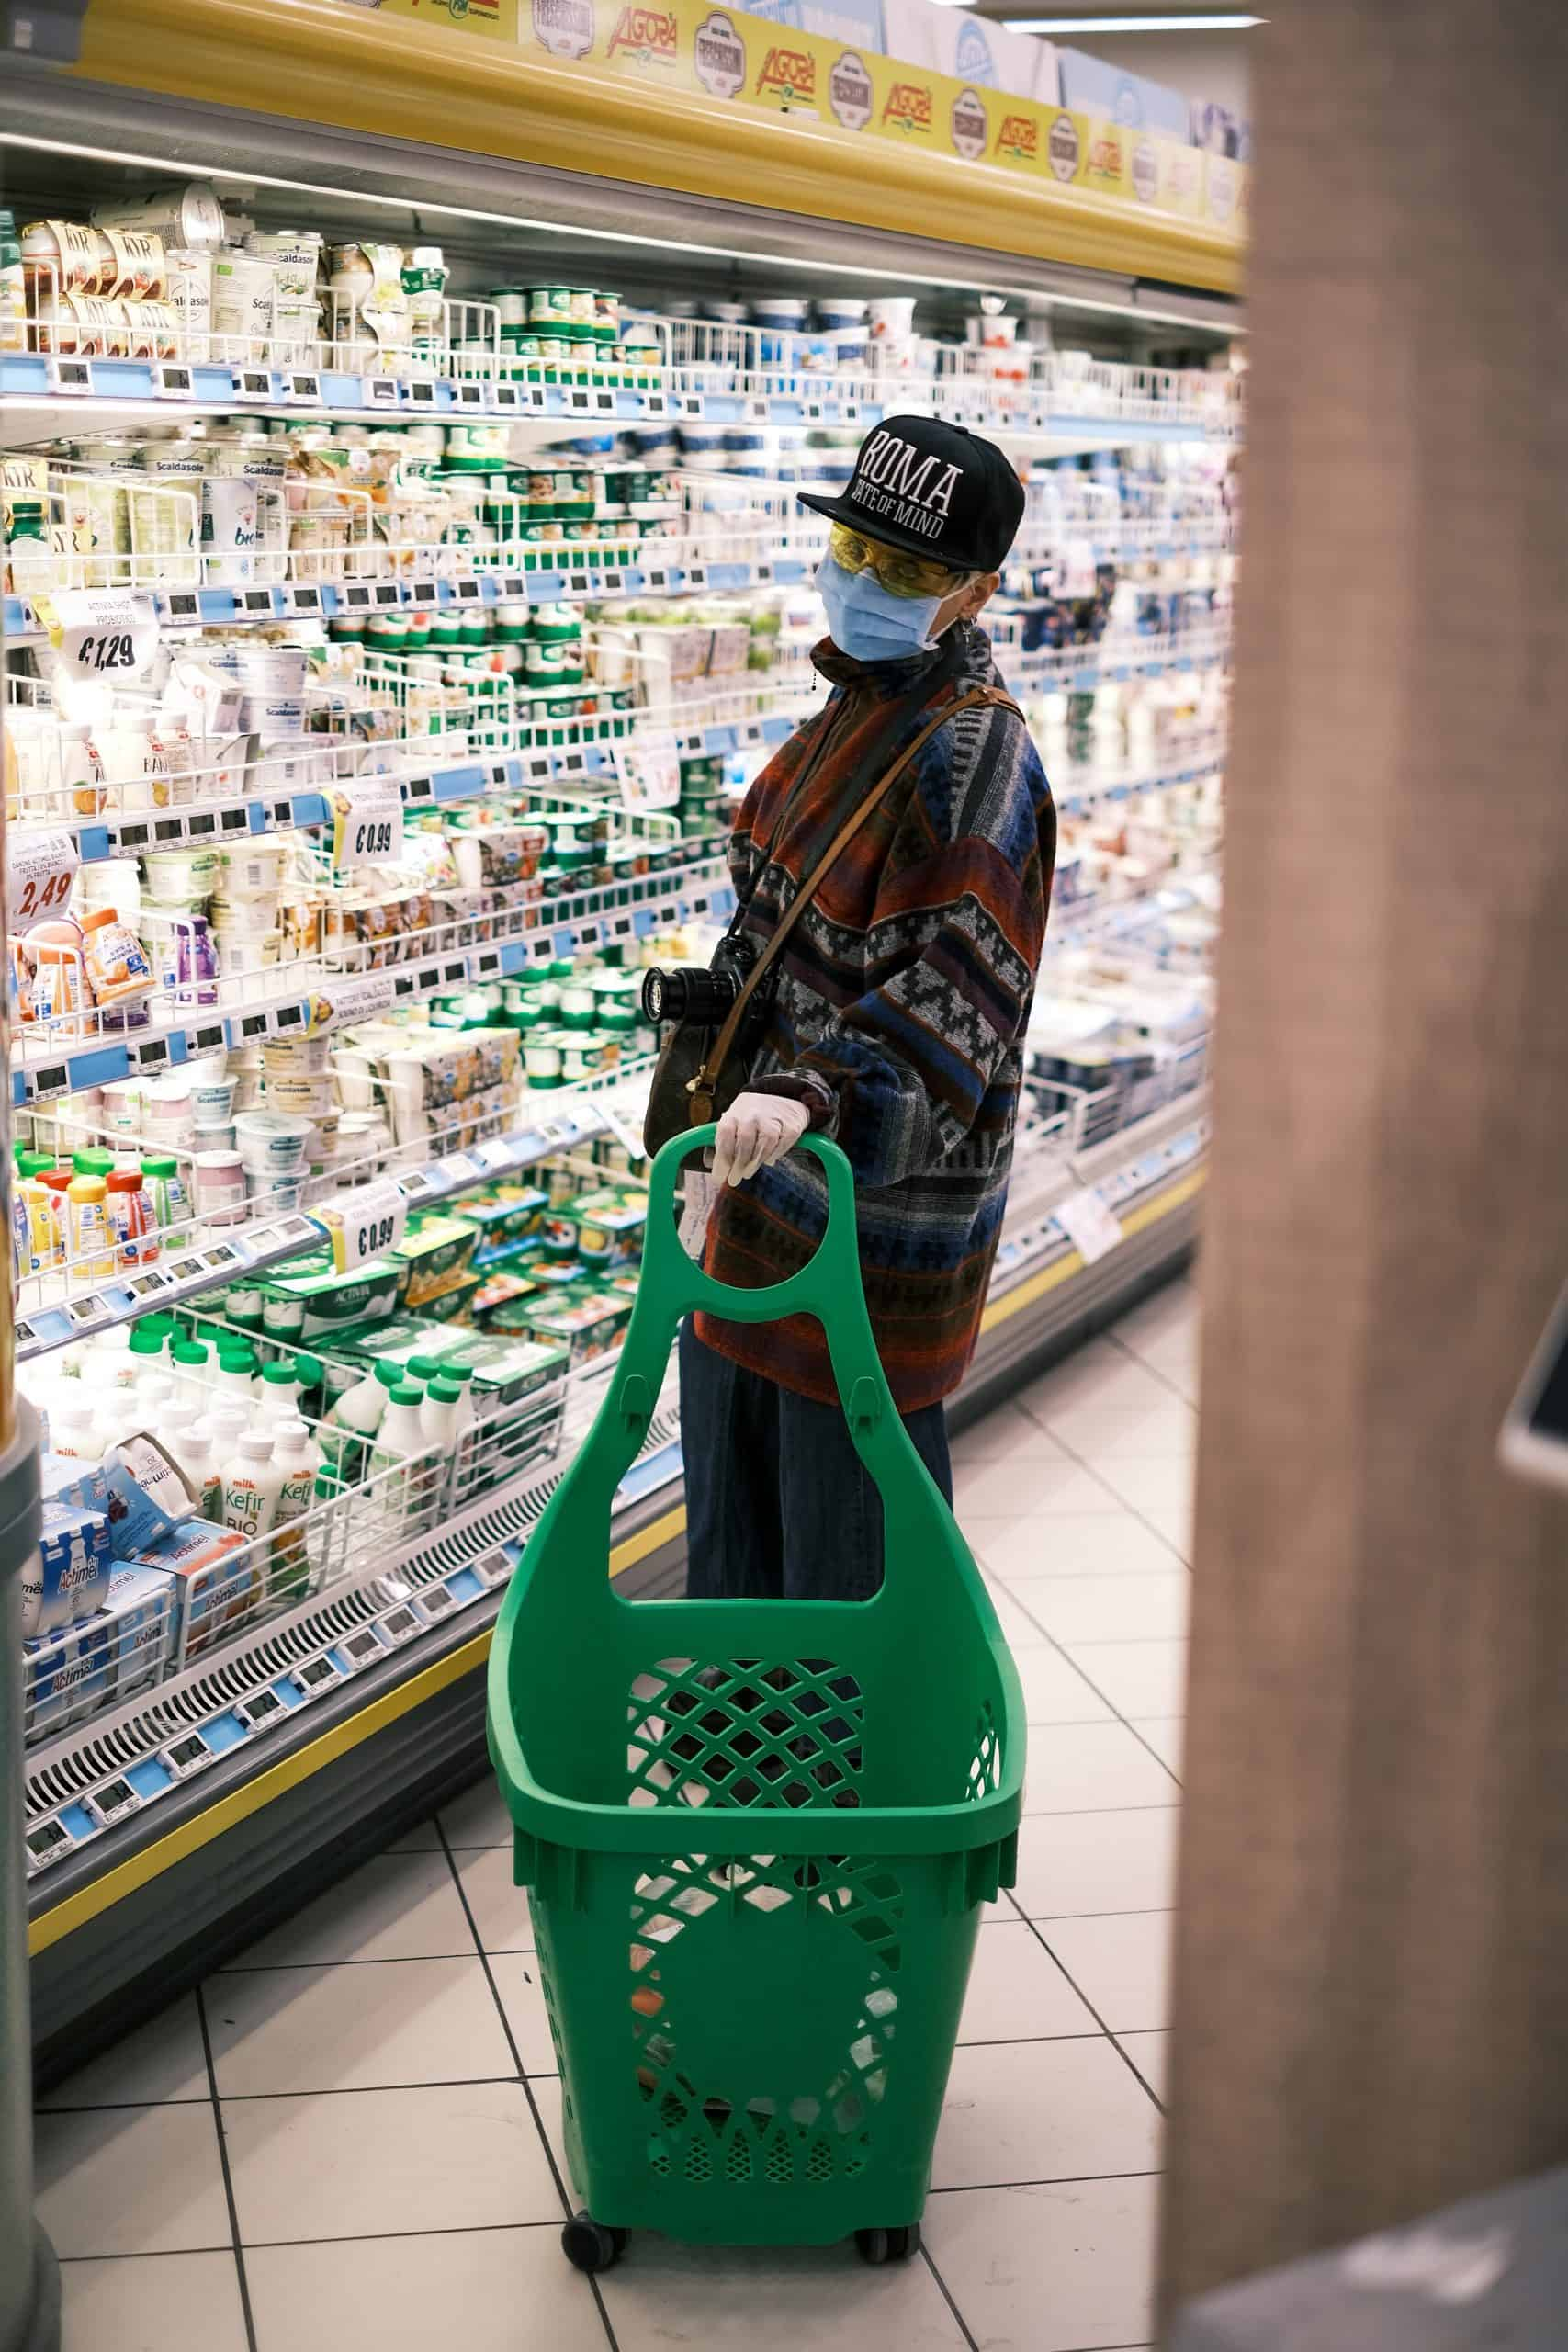 Grocery Store Slip and Fall Incidents May Be on the Rise